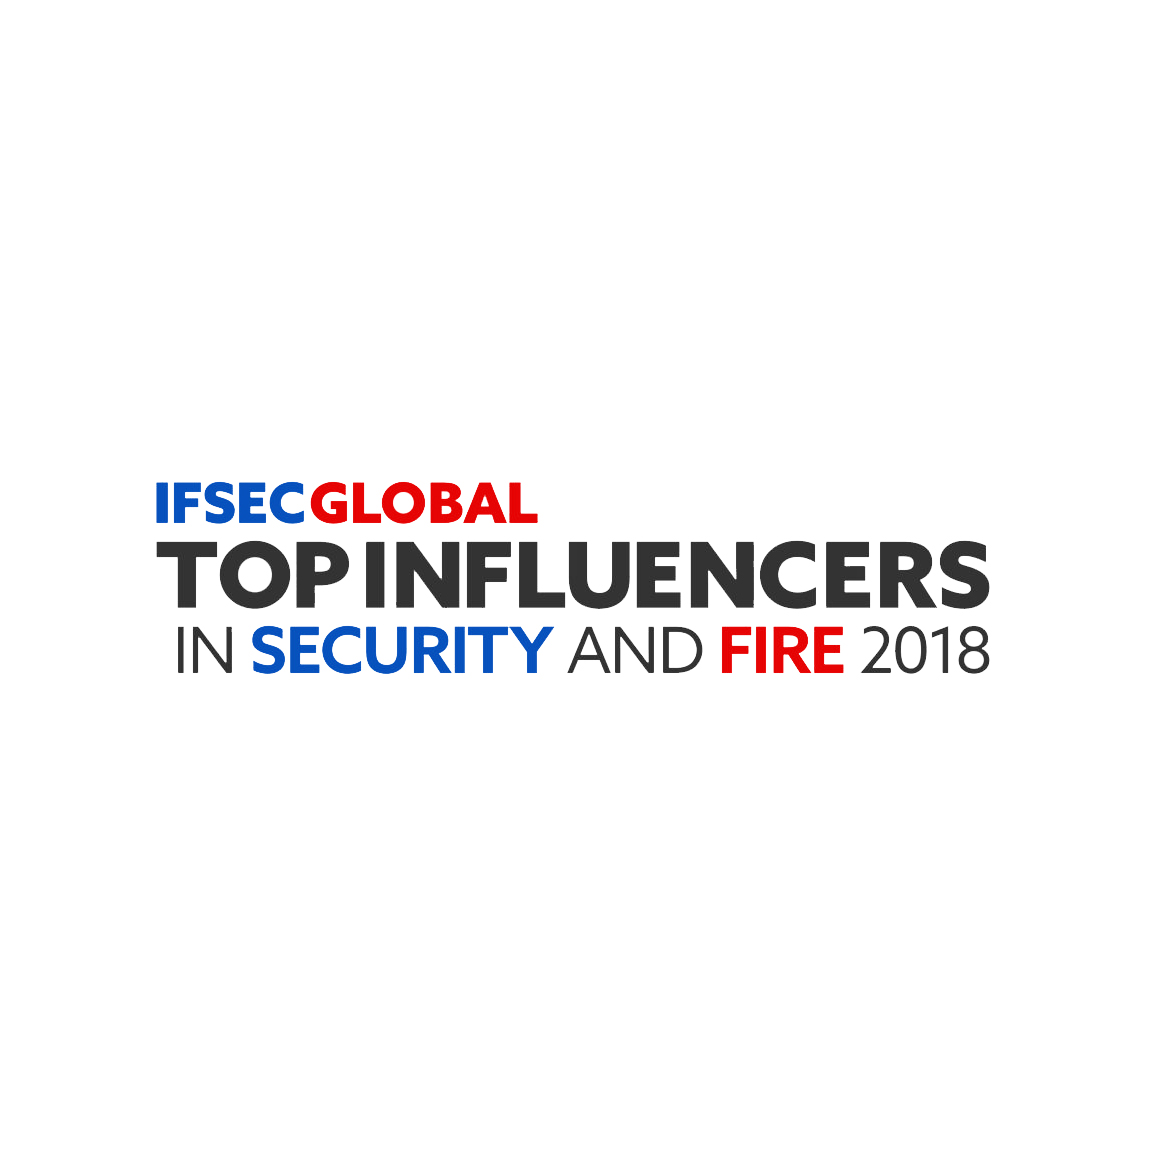 - IFSEC global award v2 - Terry Cutler is named #1 to IFSEC Global's Top 20 Most Influential People in Cybersecurity